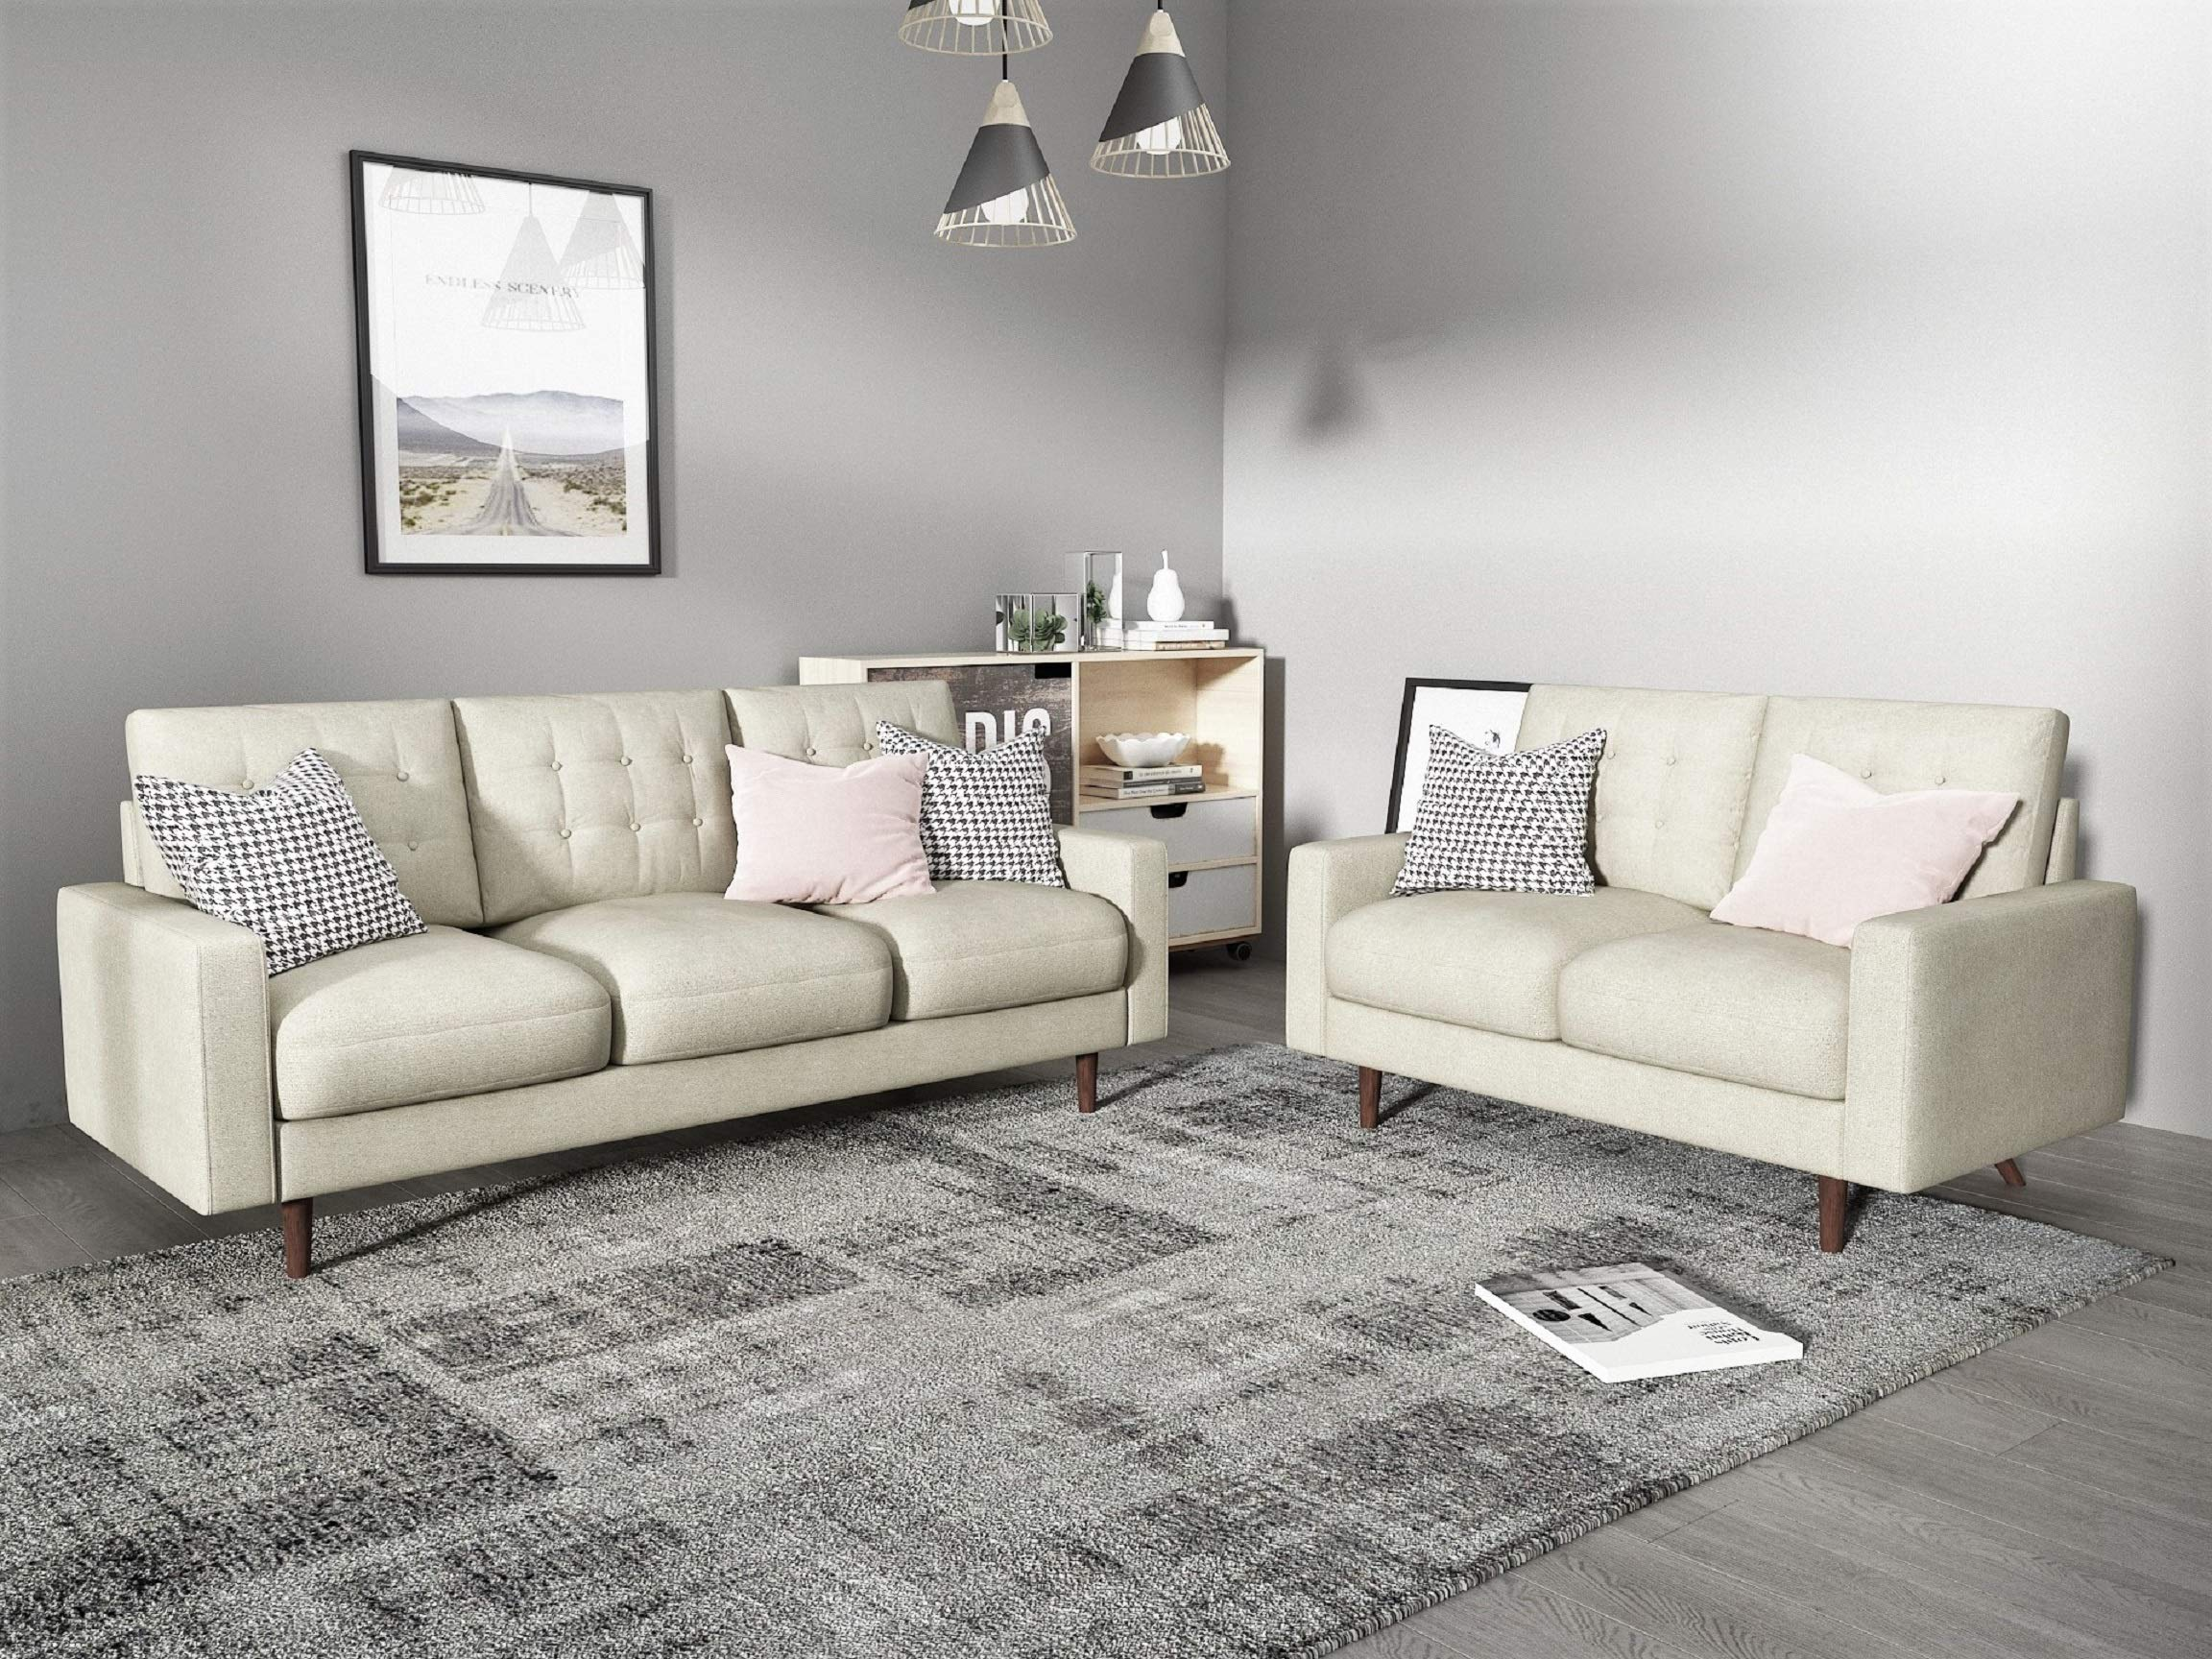 Container Furniture Direct Modern Tufted Velvet Living Room Sofa Set, 2 Piece, Beige, by Container Furniture Direct